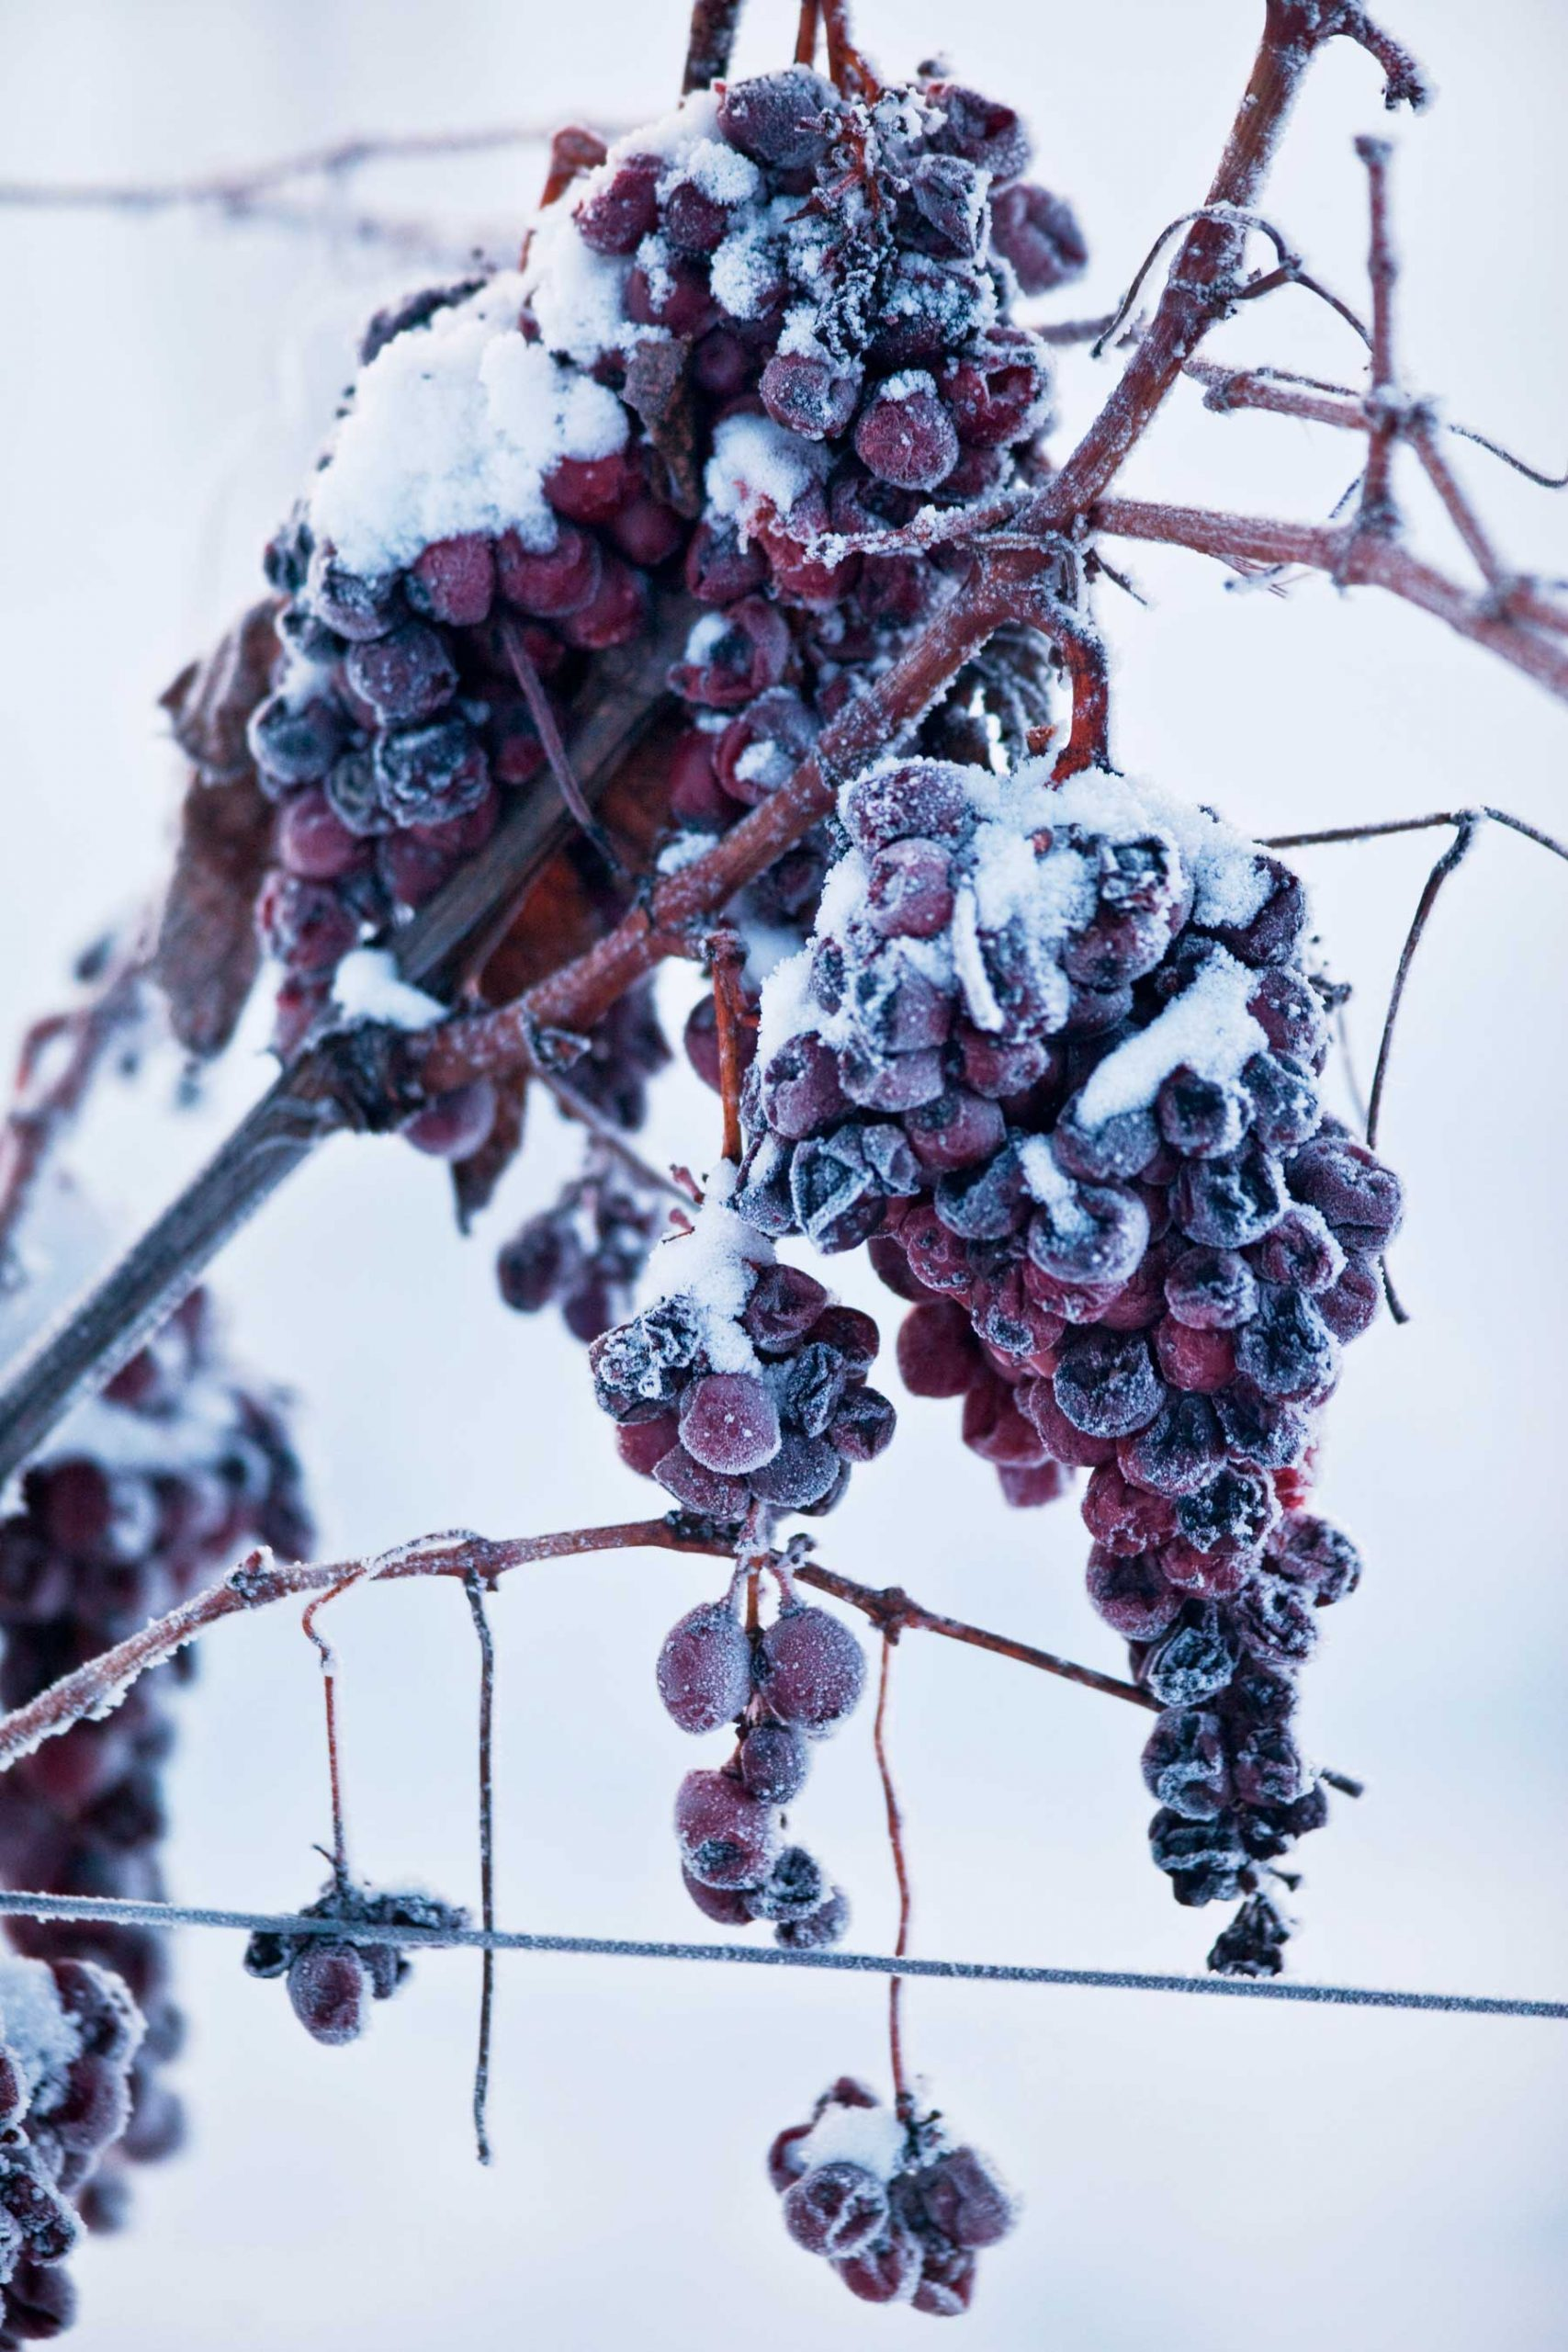 Red grapes frozen on the vine in fluffy, white snow.